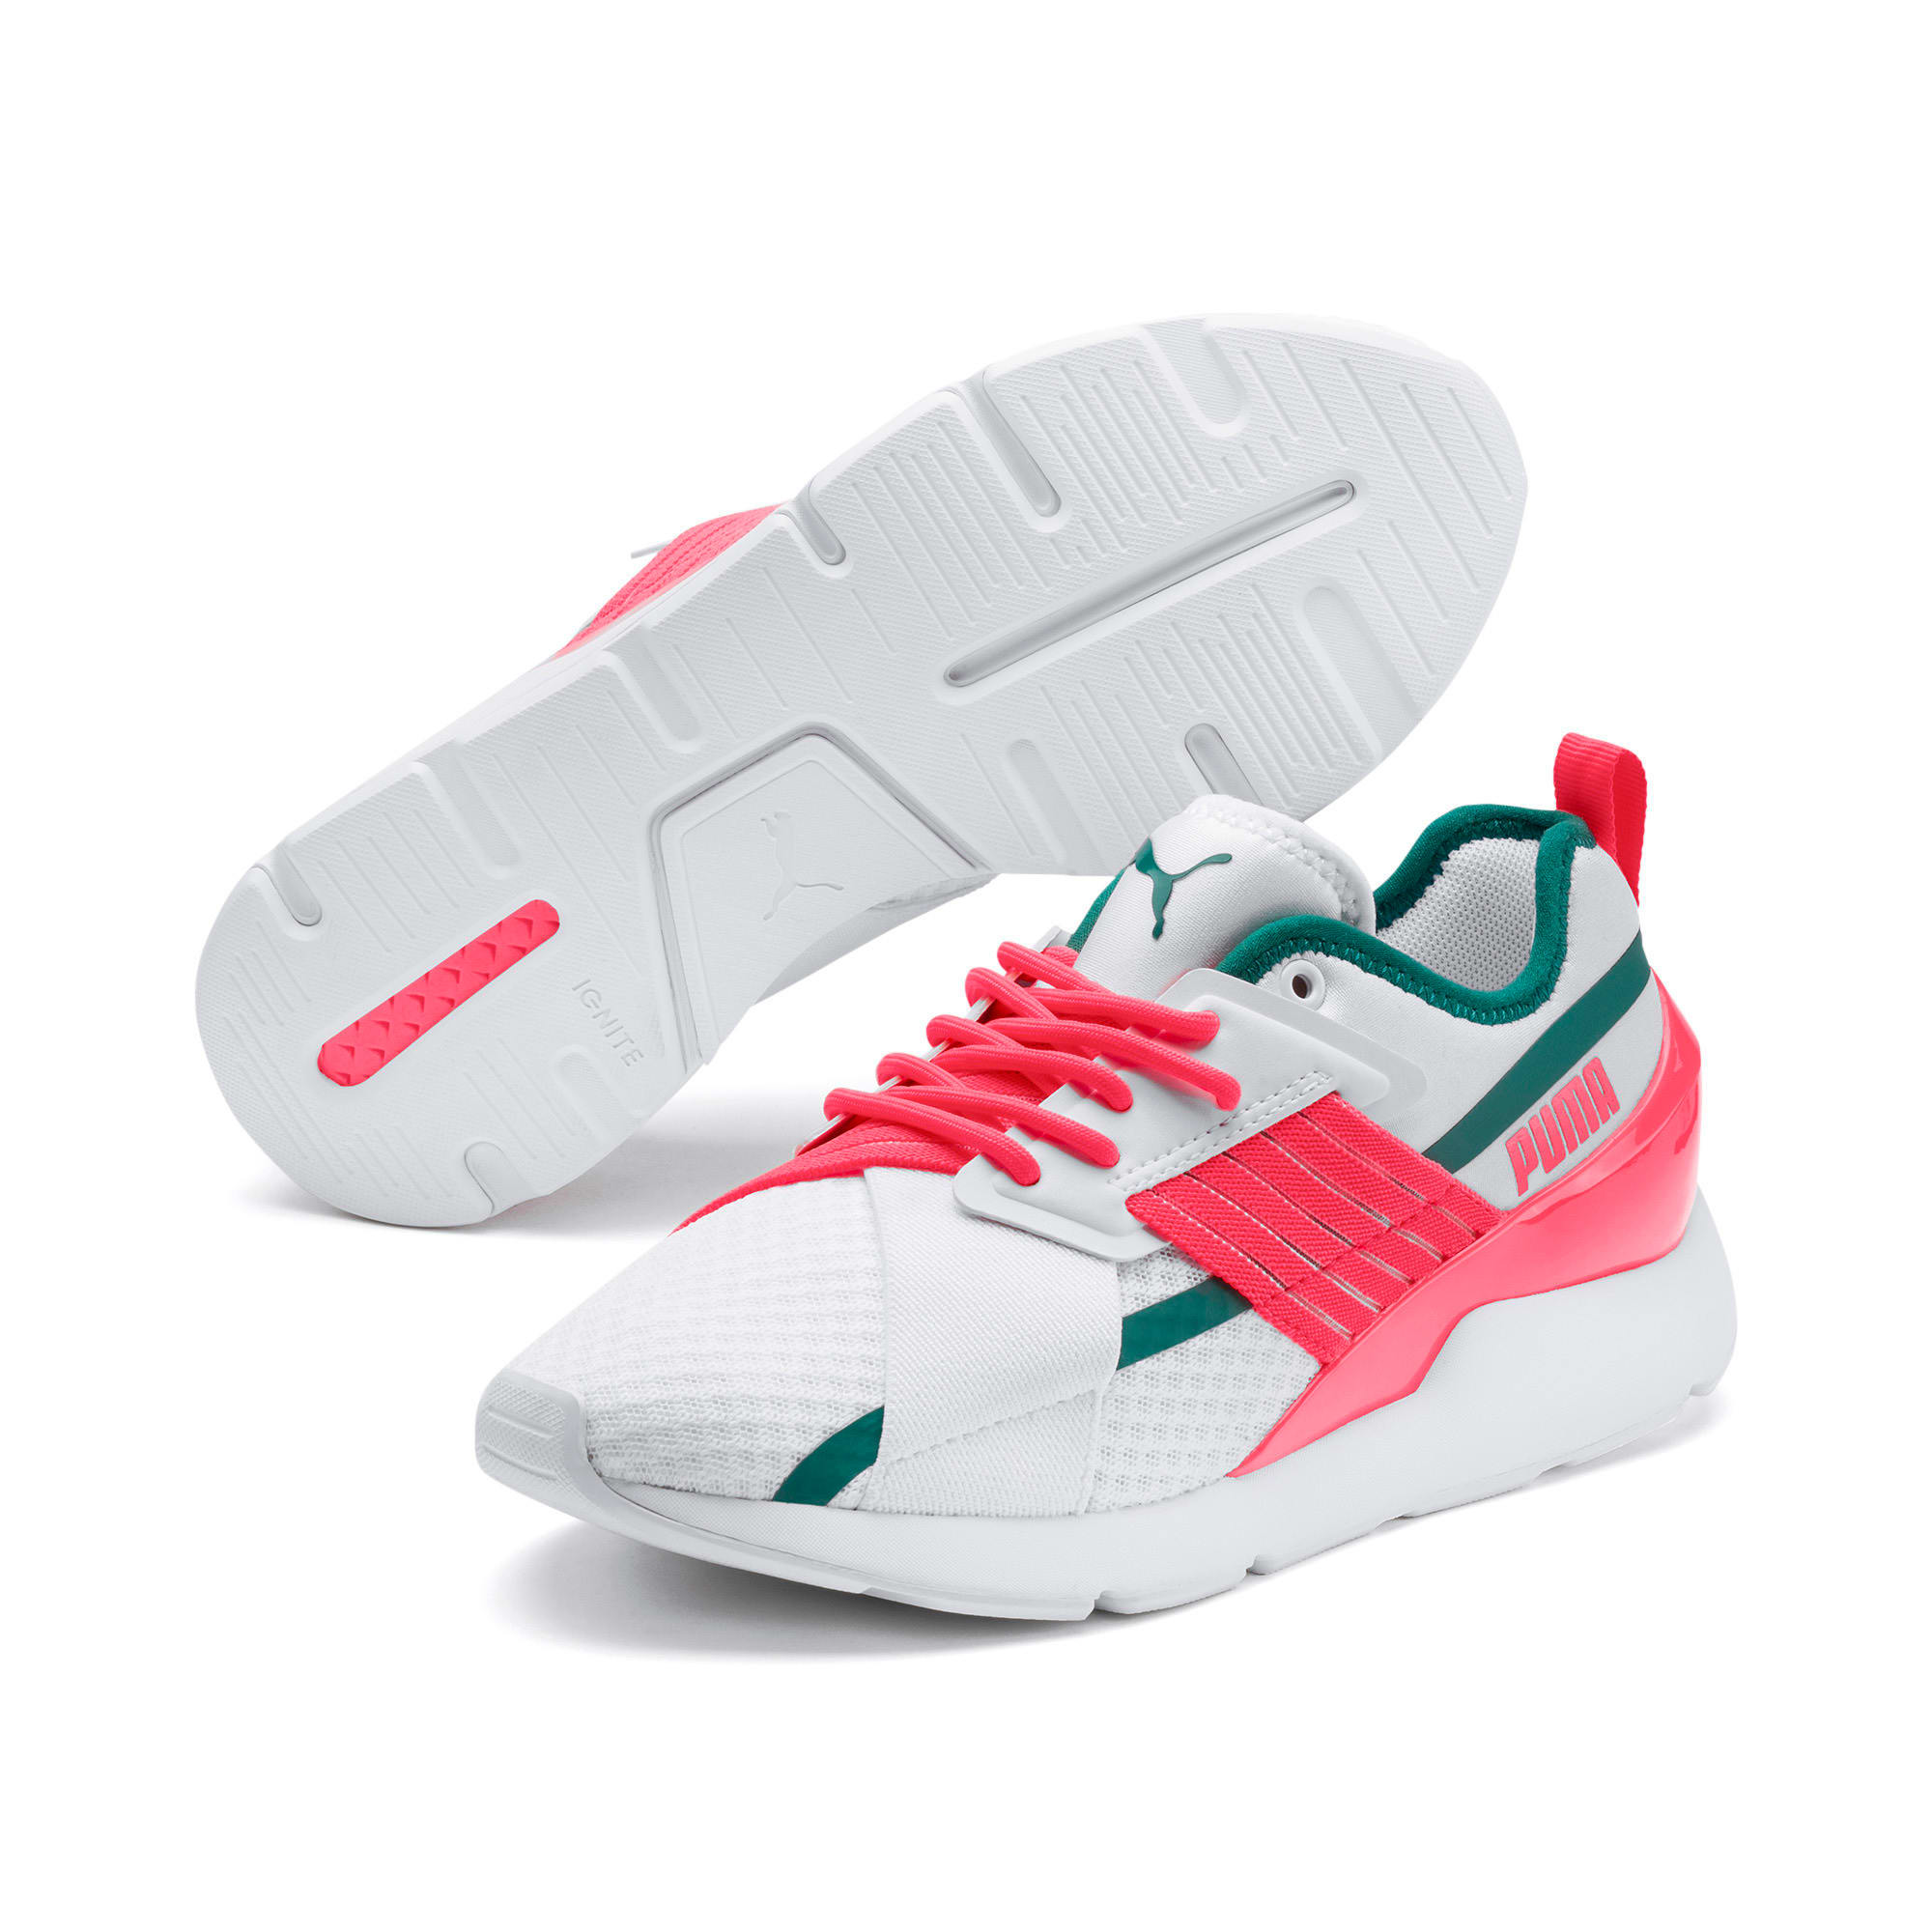 Thumbnail 3 of Muse X-2 Damen Sneaker, Puma White-Pink Alert, medium